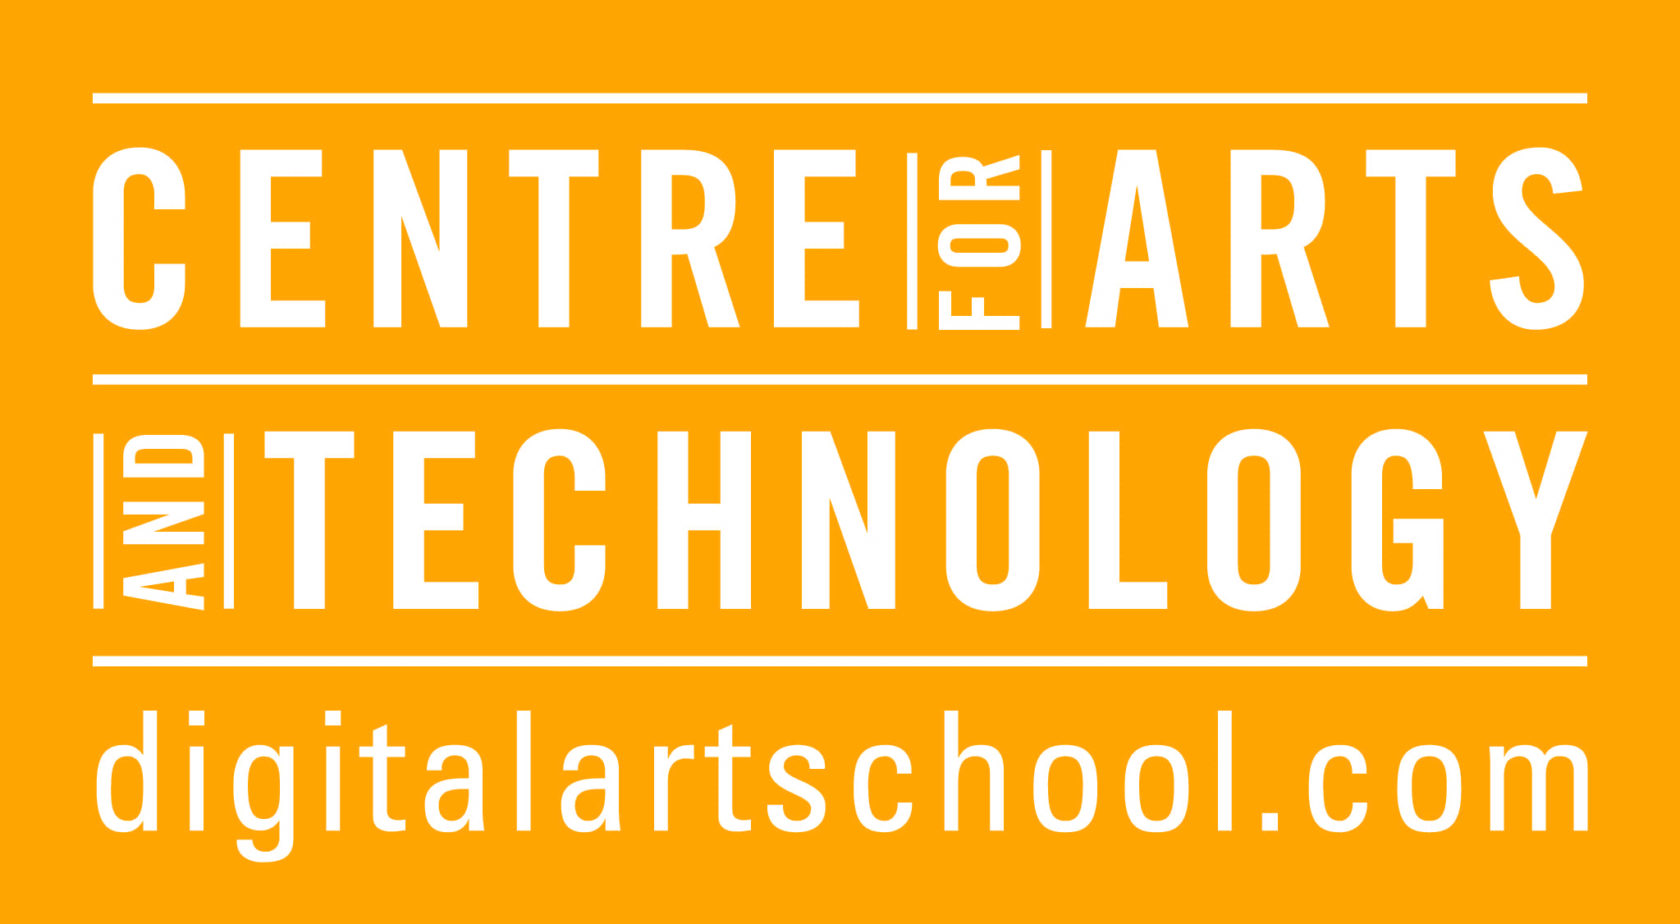 Centre for arts and technology logo with url